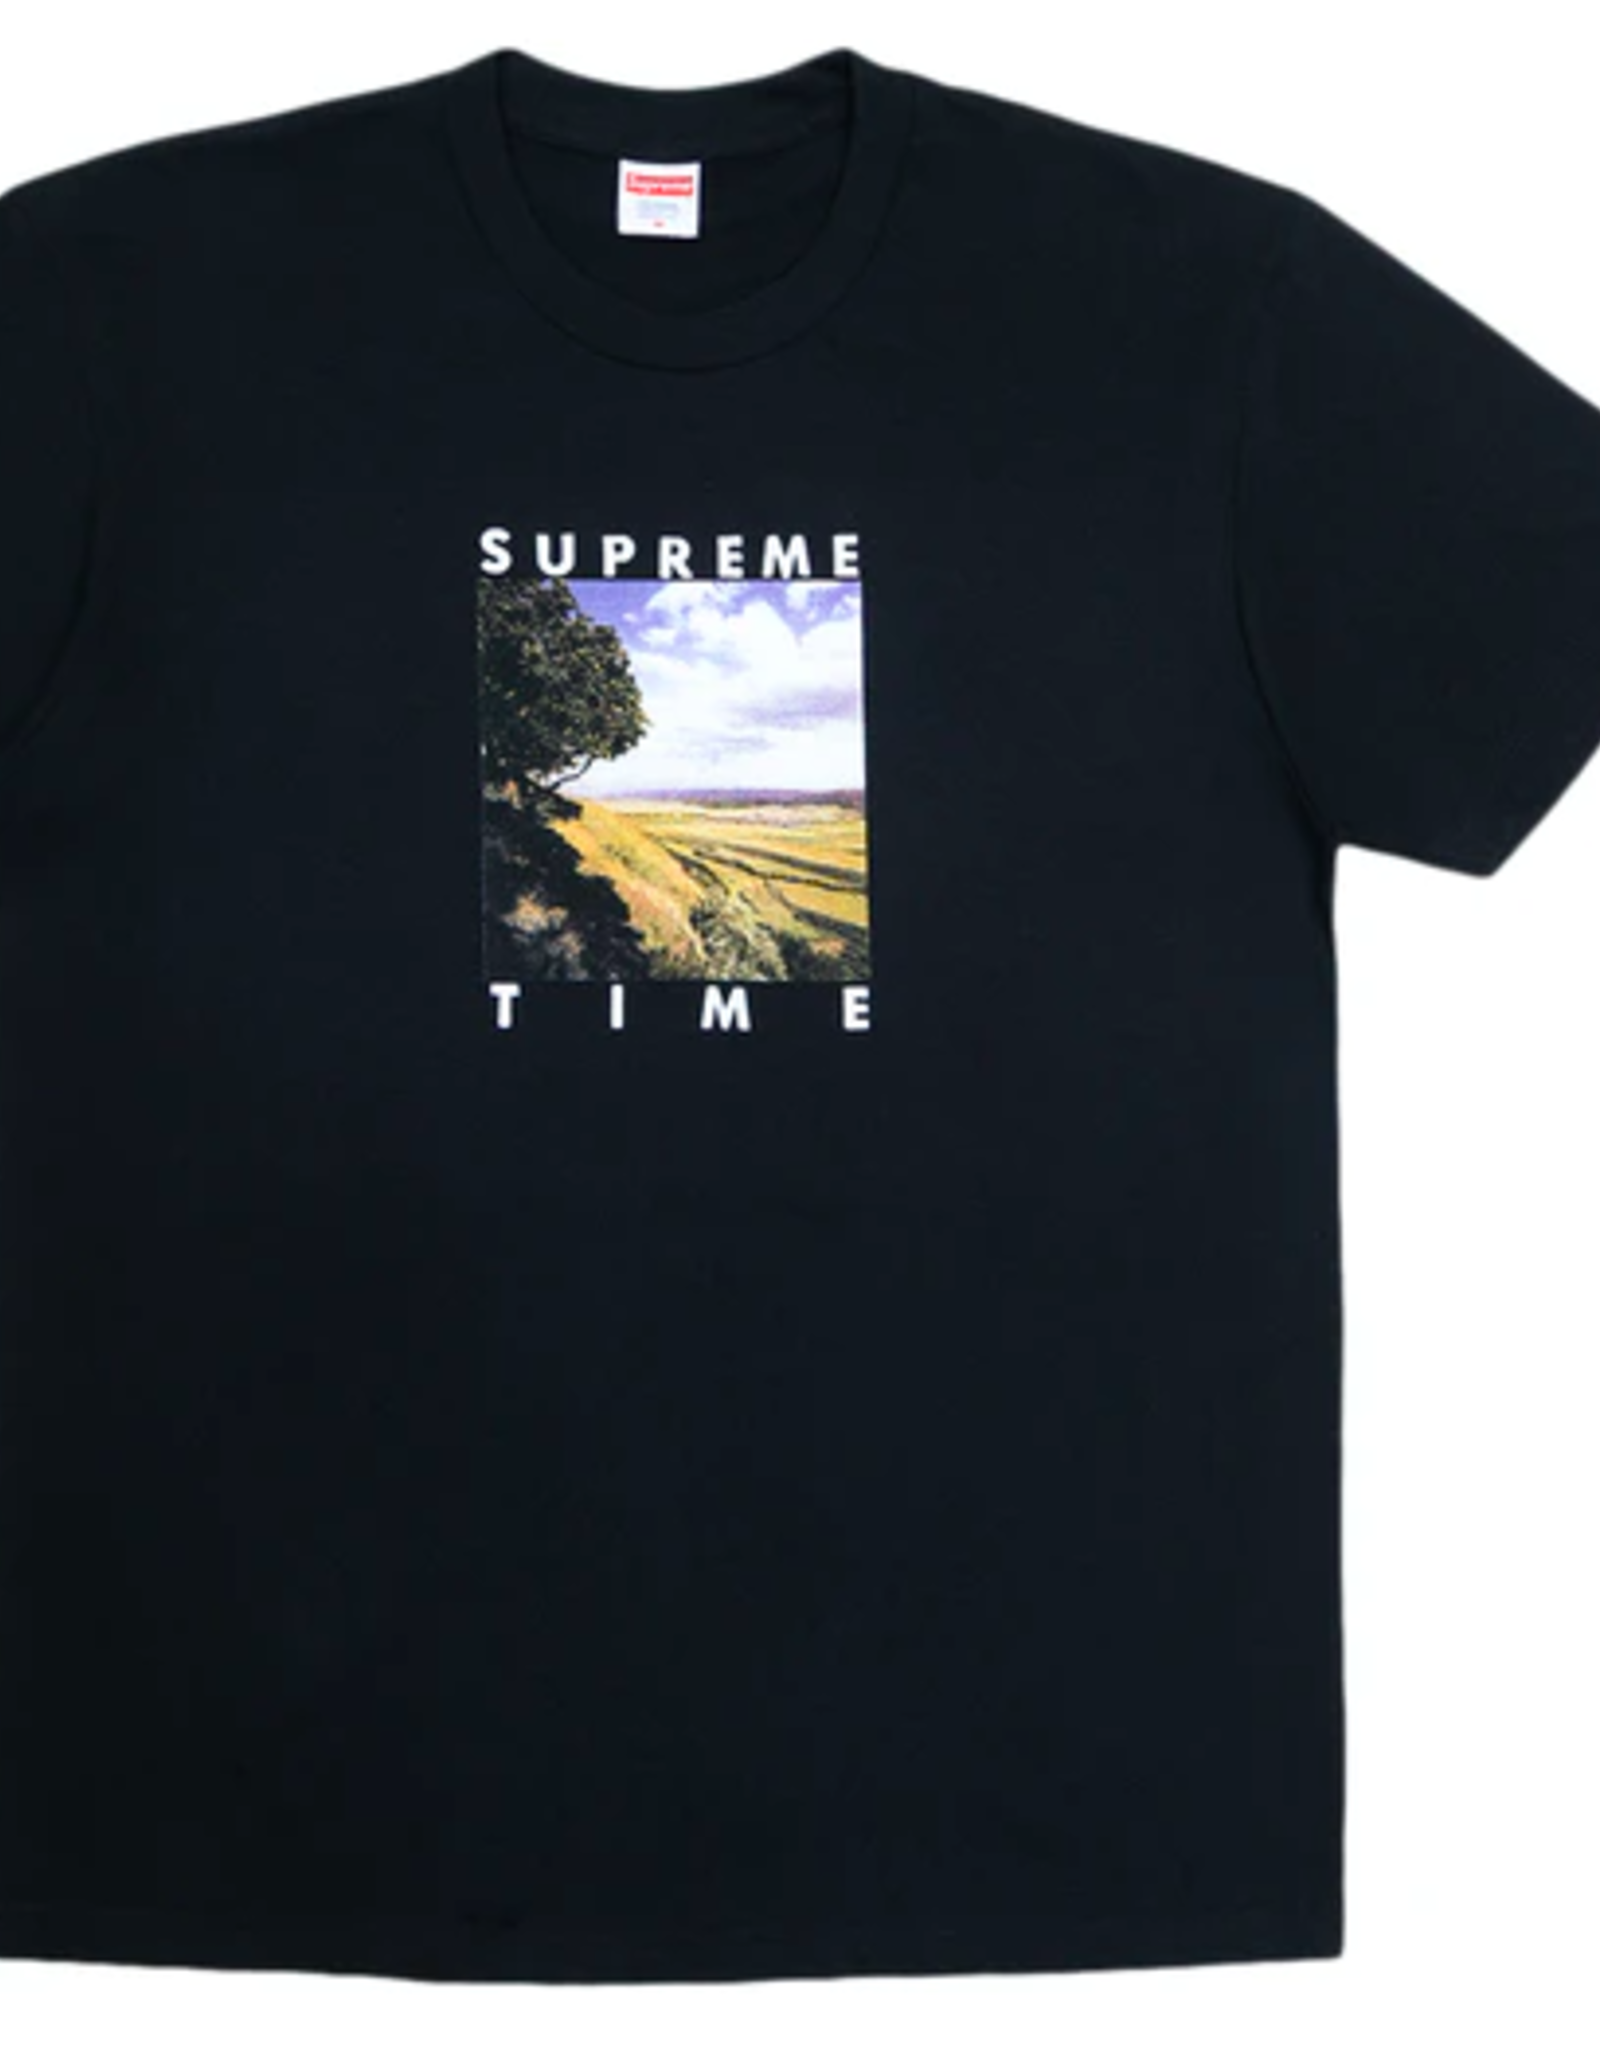 SUPREME Time Tee Black XL